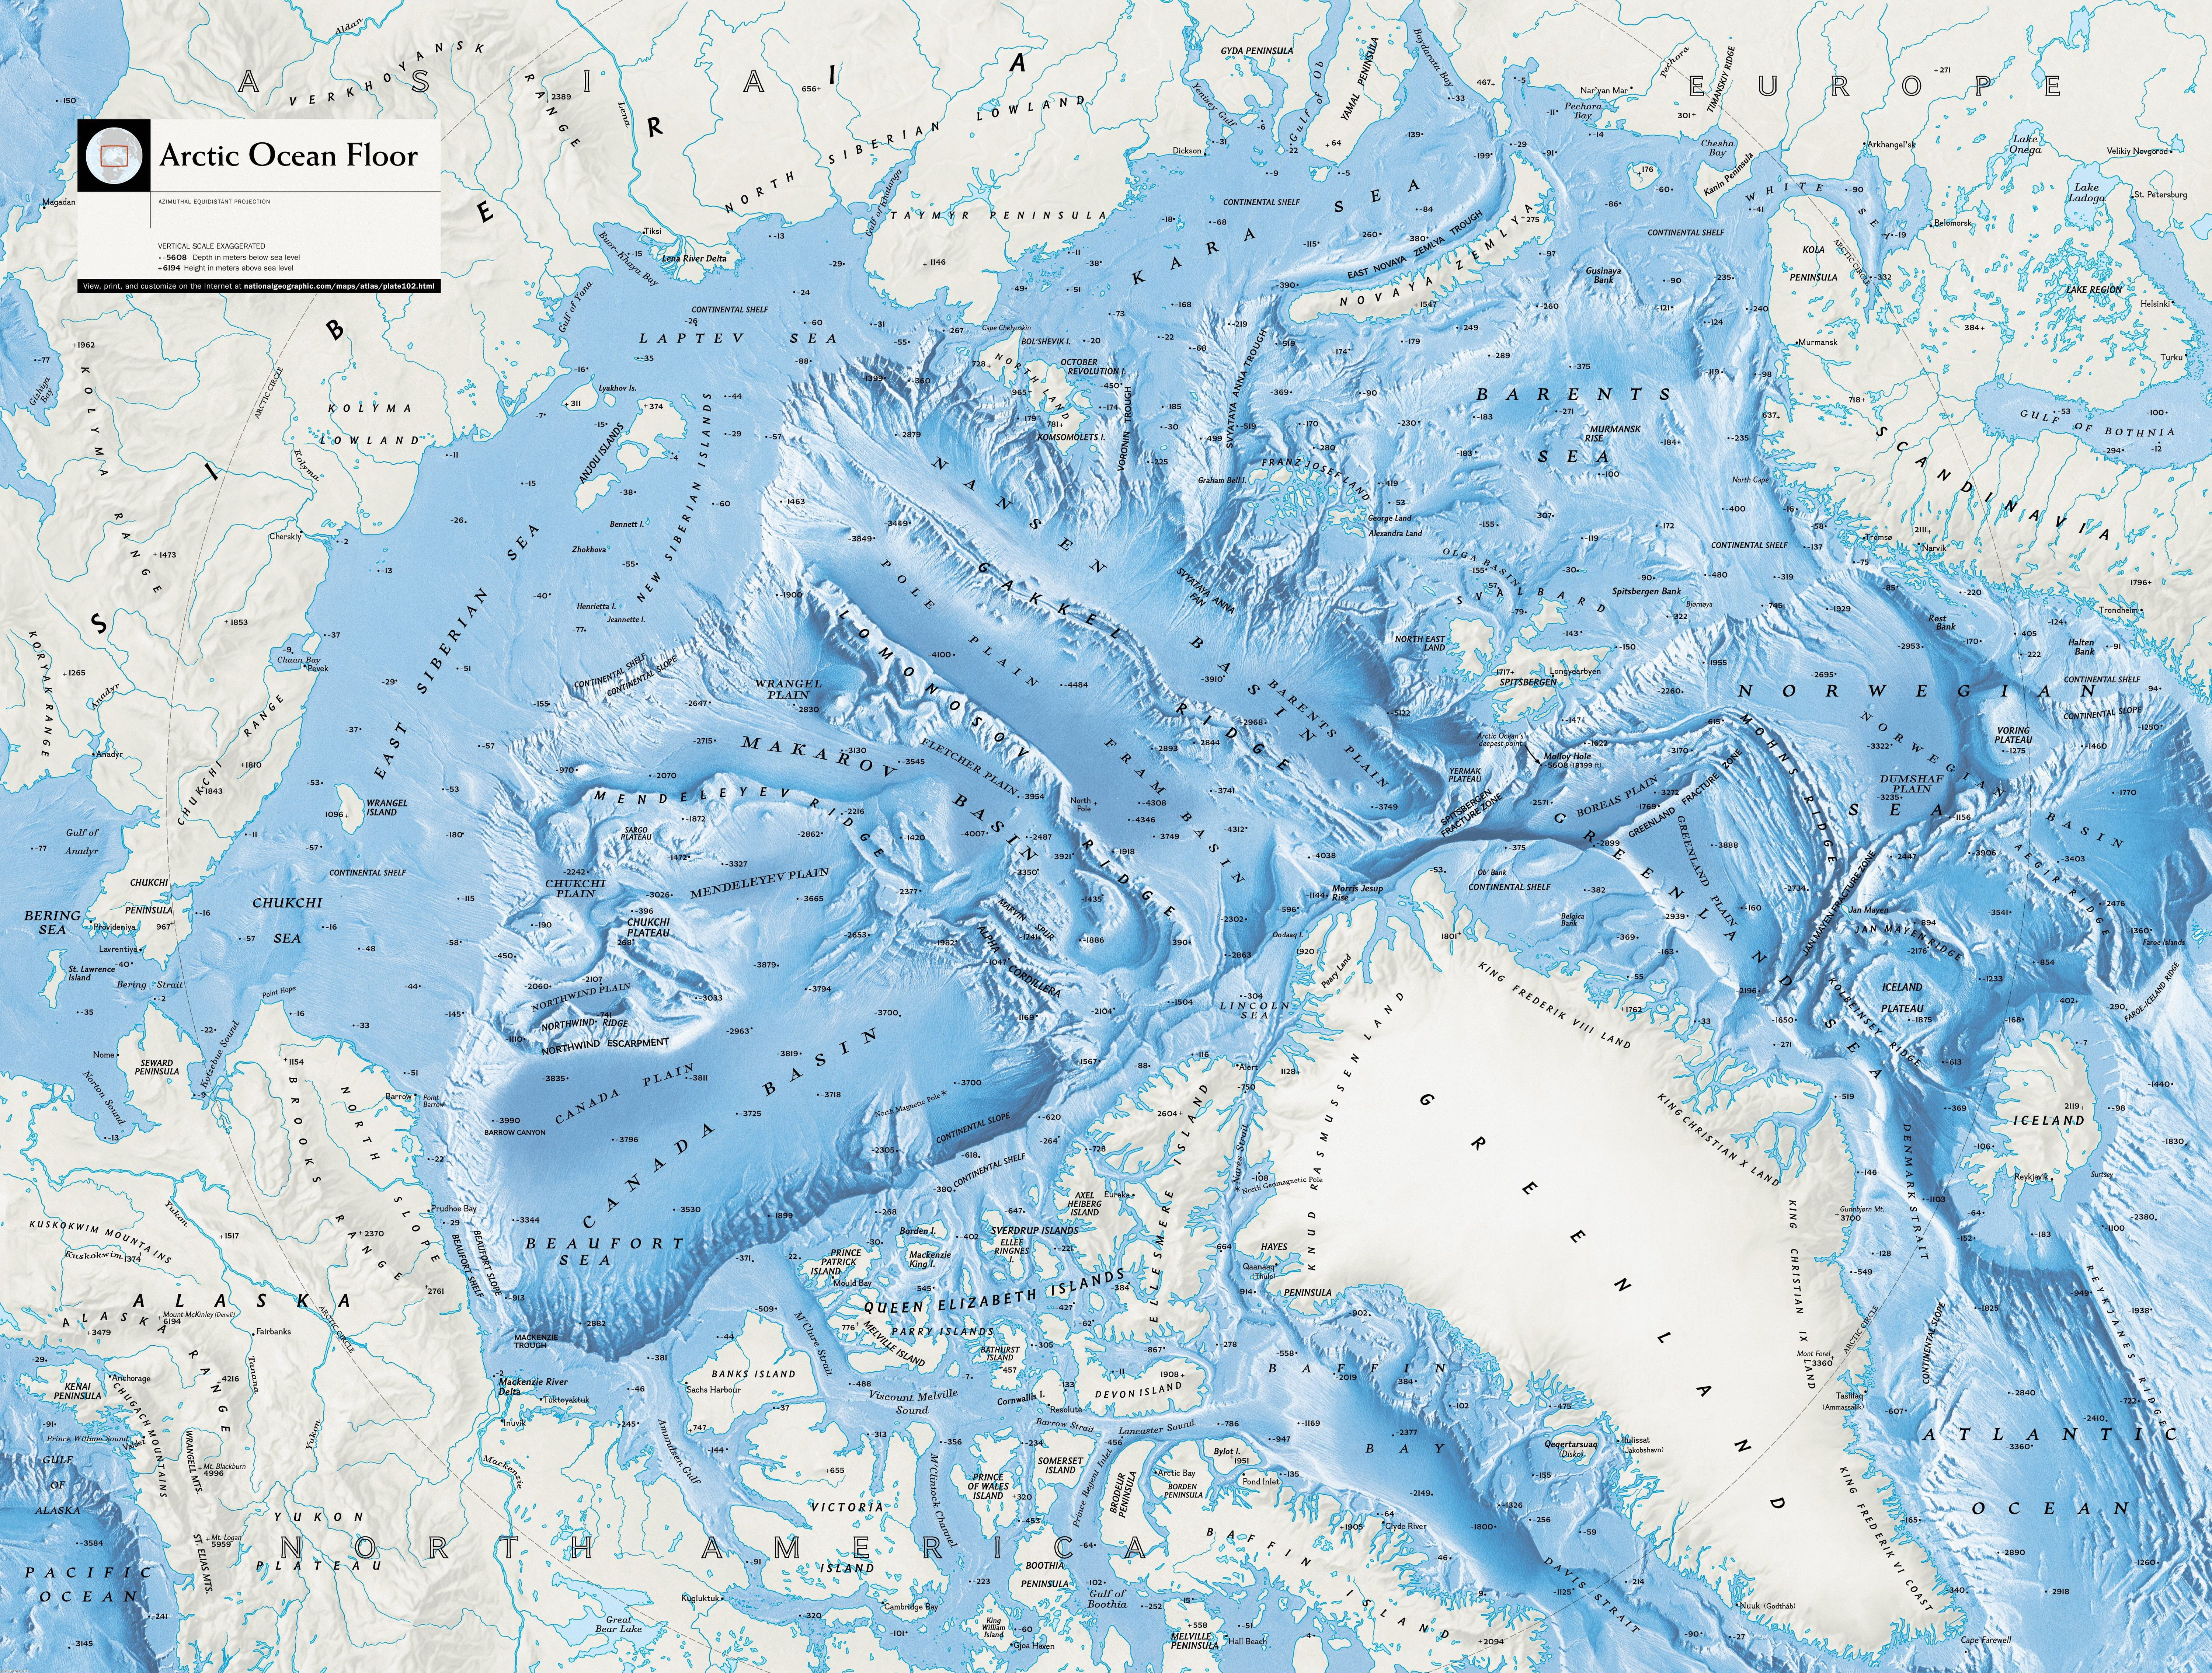 large detailed Arctic Ocean Floor map from the national geographic